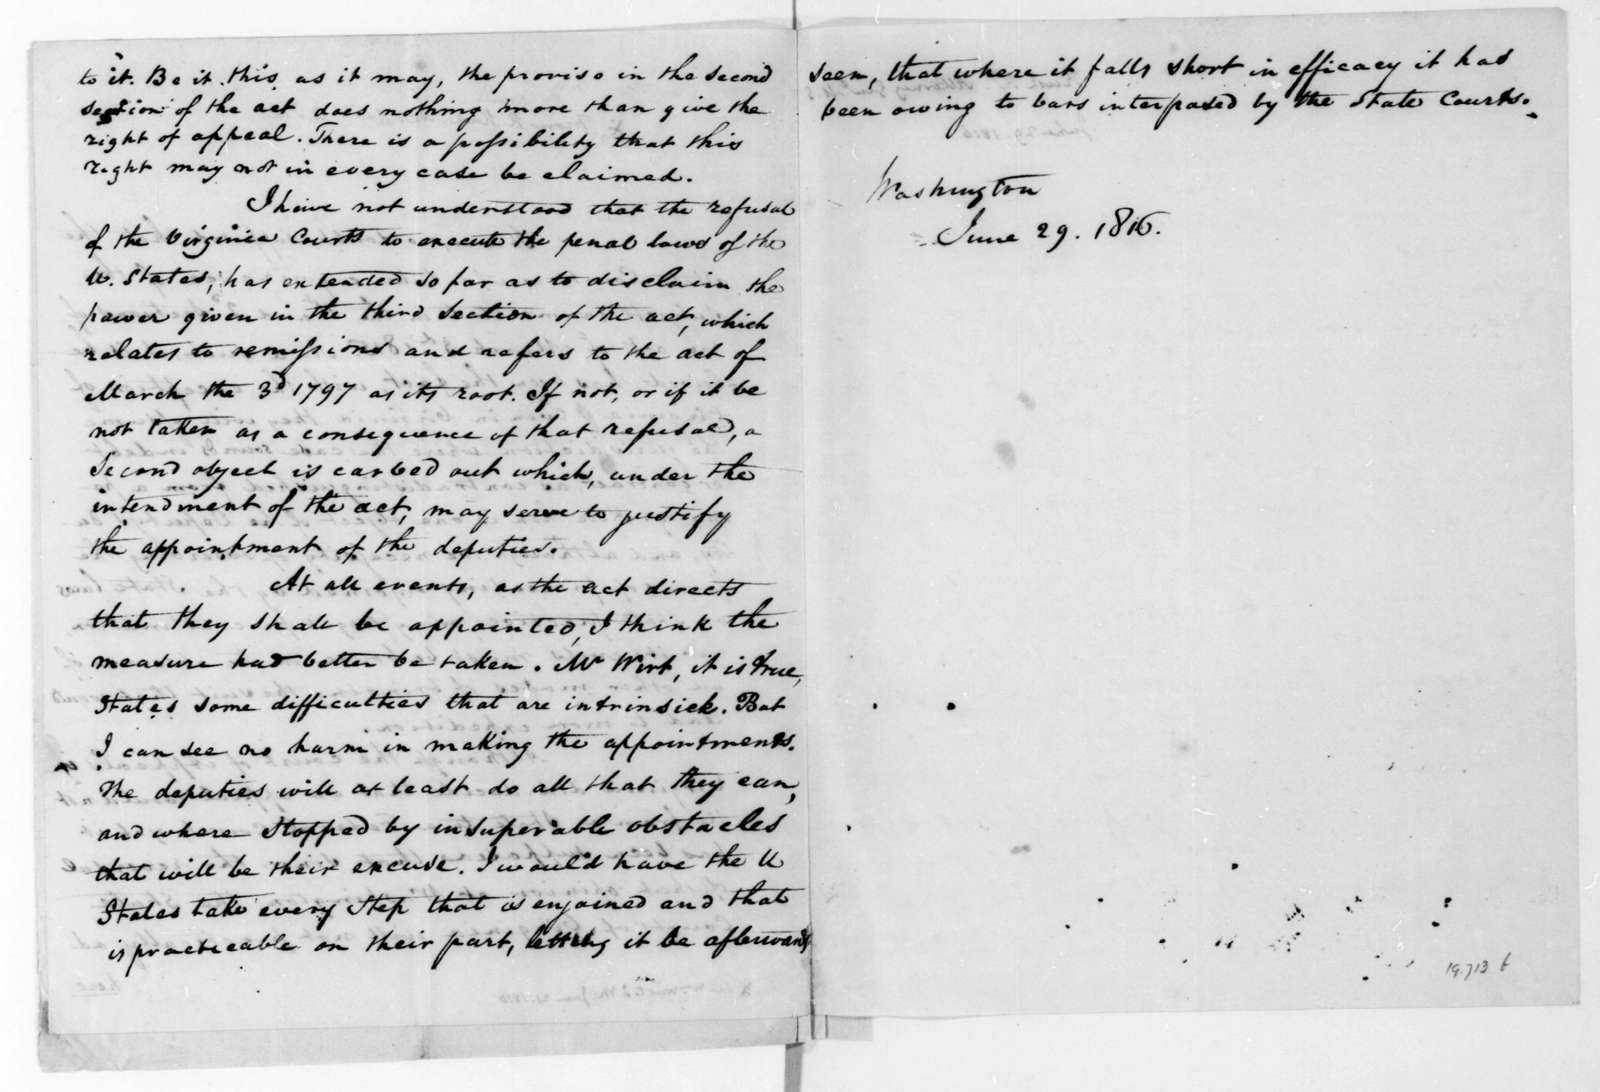 Richard Rush to James Madison, June 29, 1816. Includes another letter dated the same day.